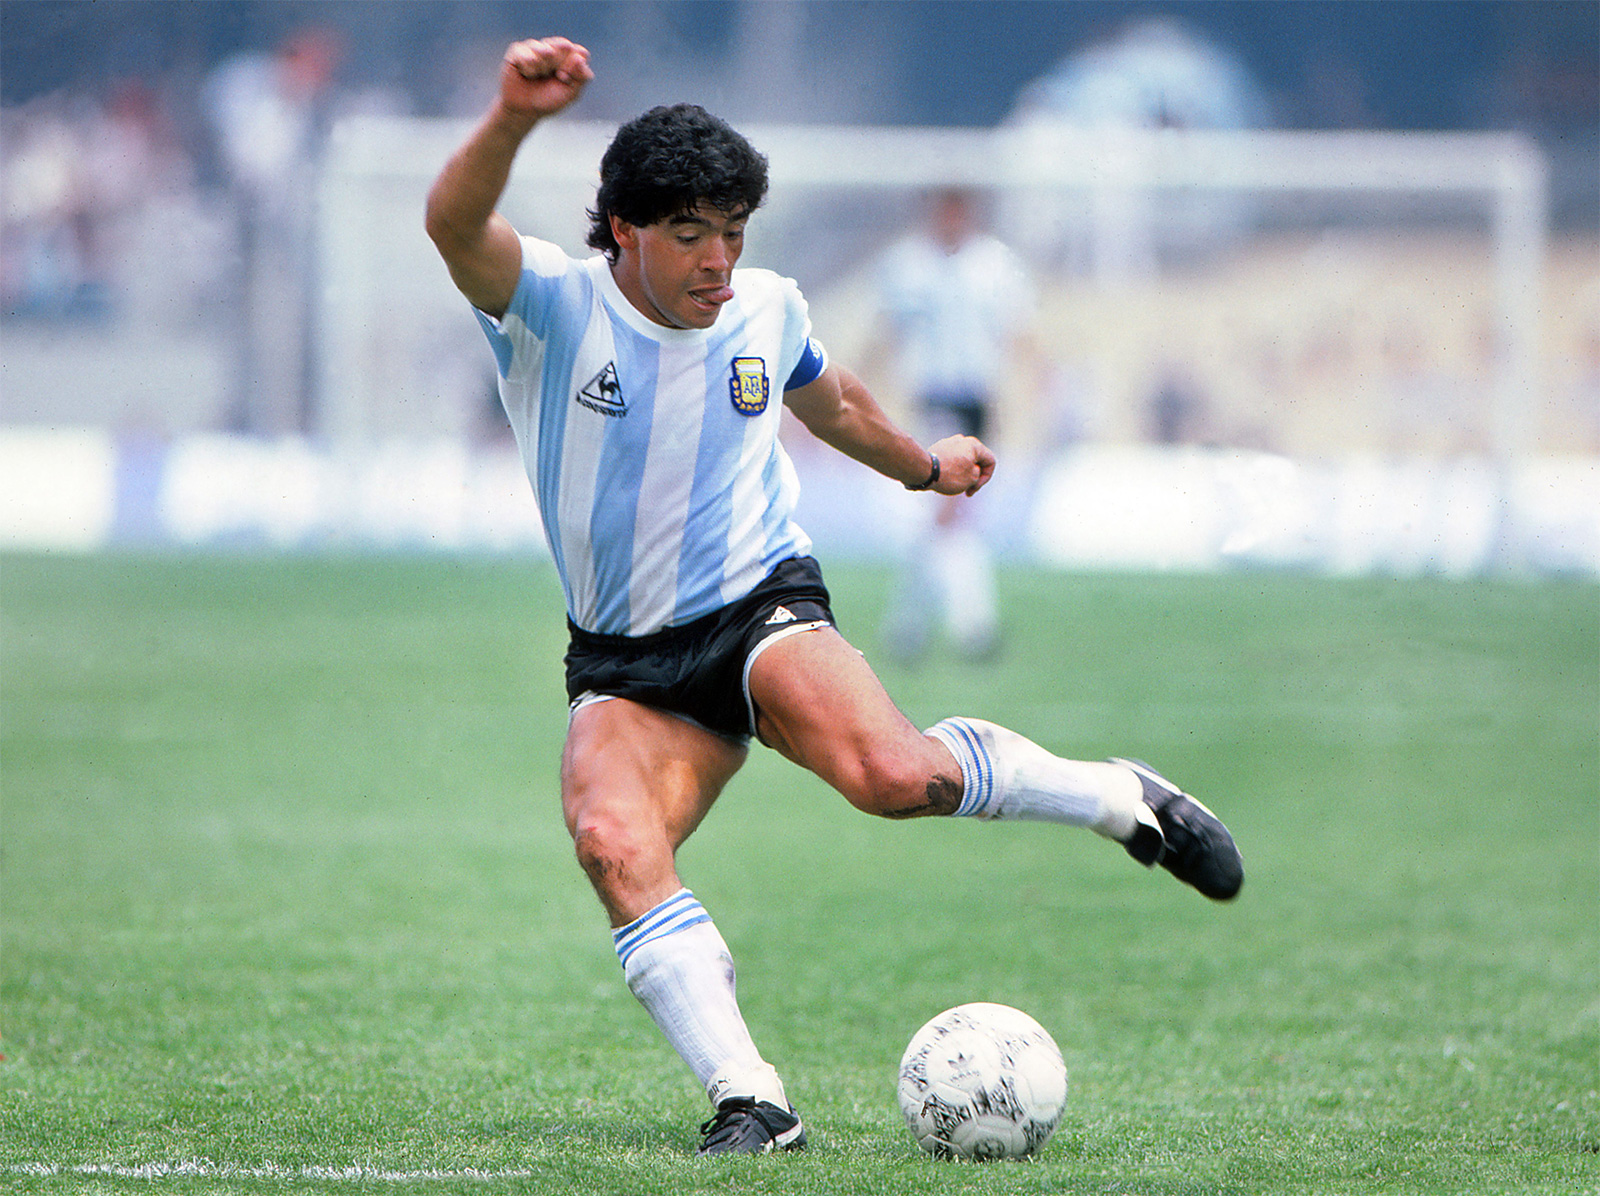 diego maradona net-worth